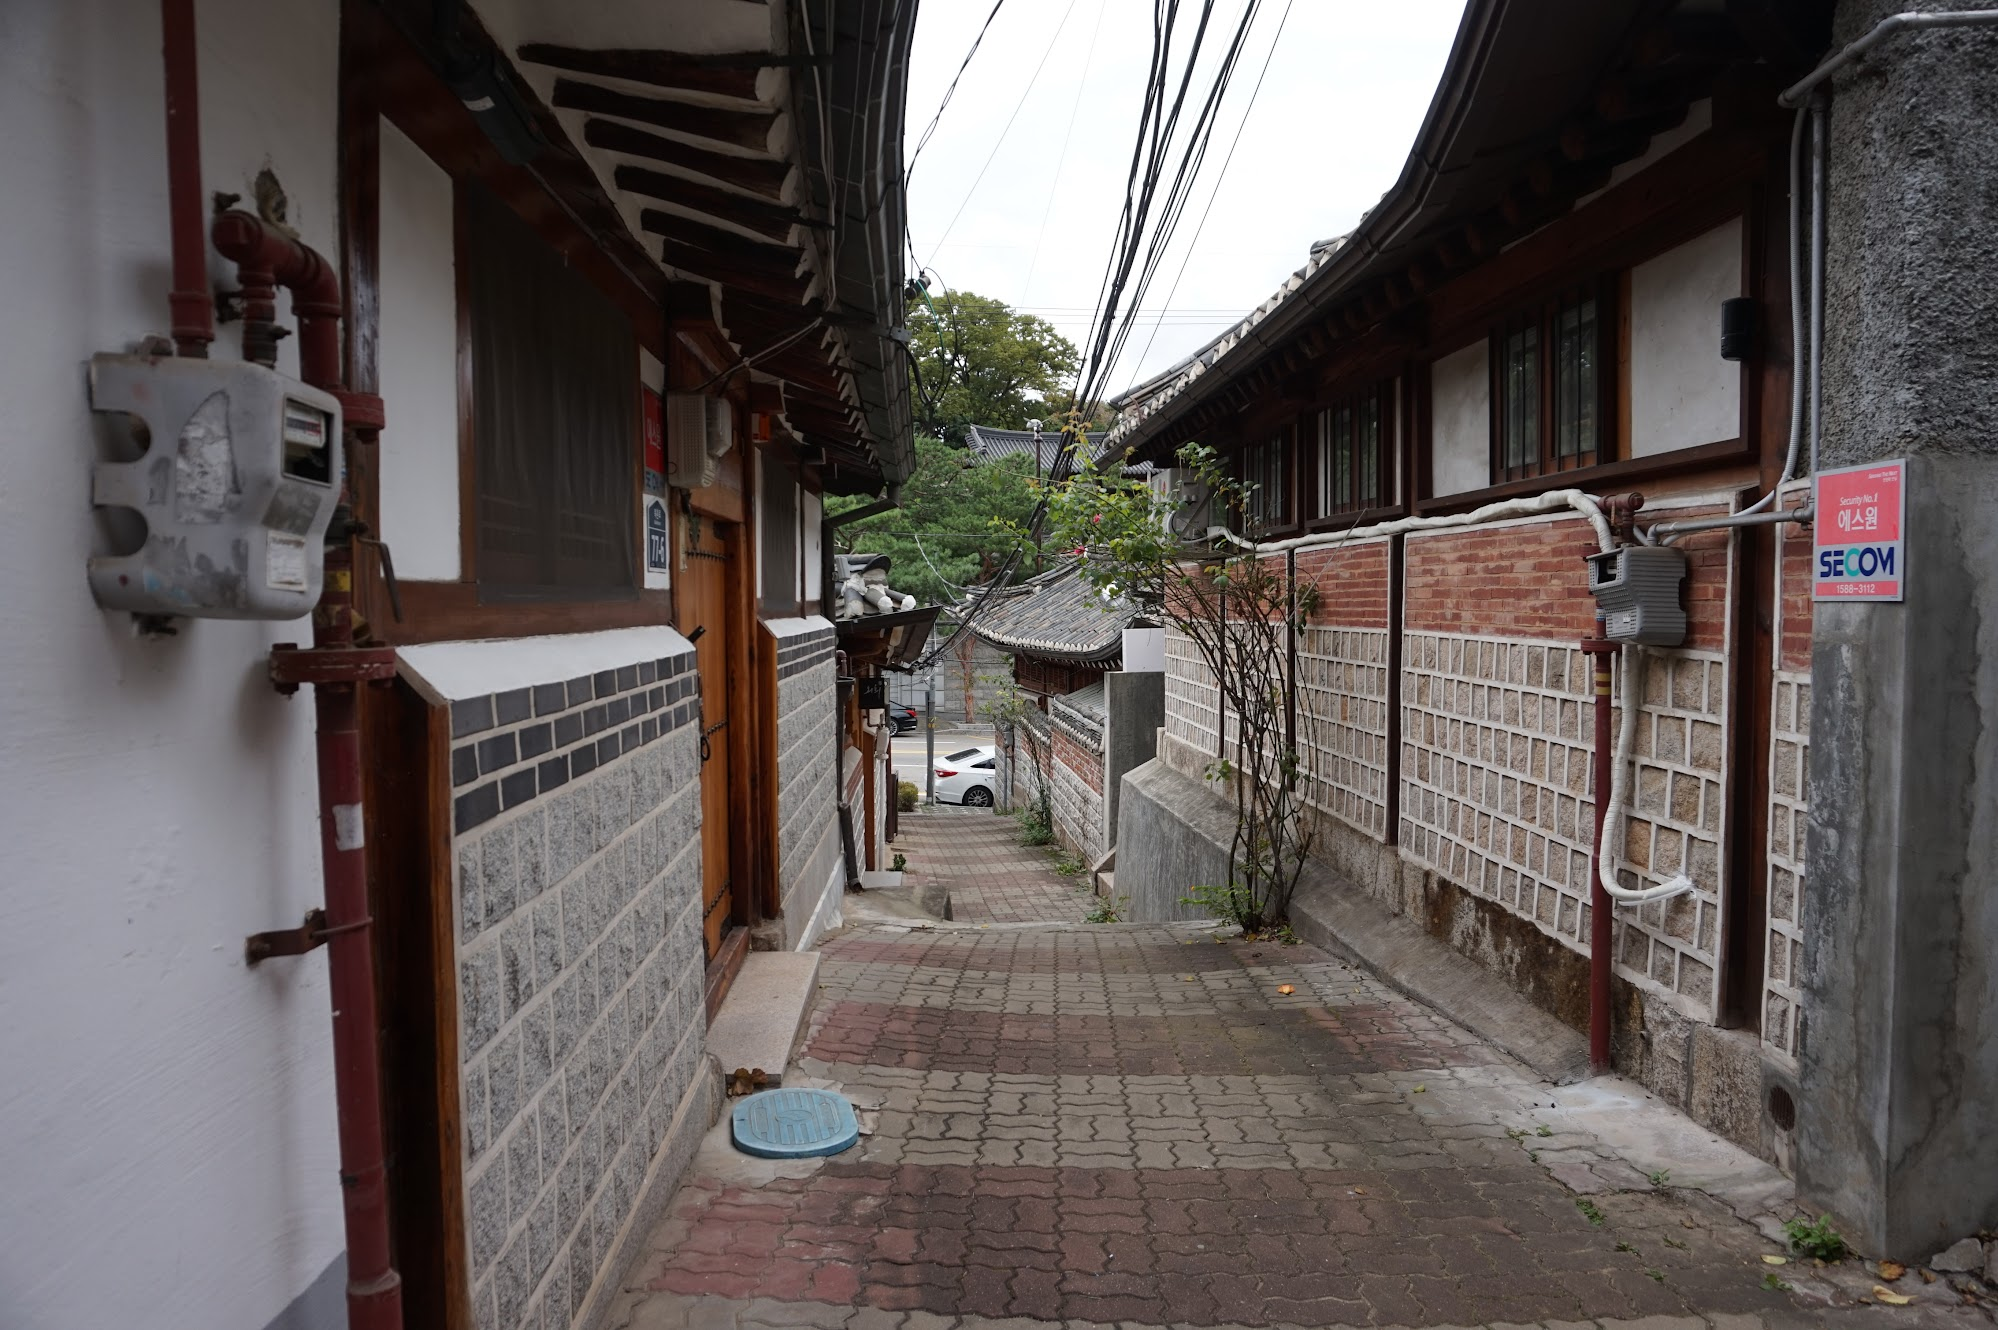 Seoul Bukchon Hanok Village Insadong South Korea travel trip solo female